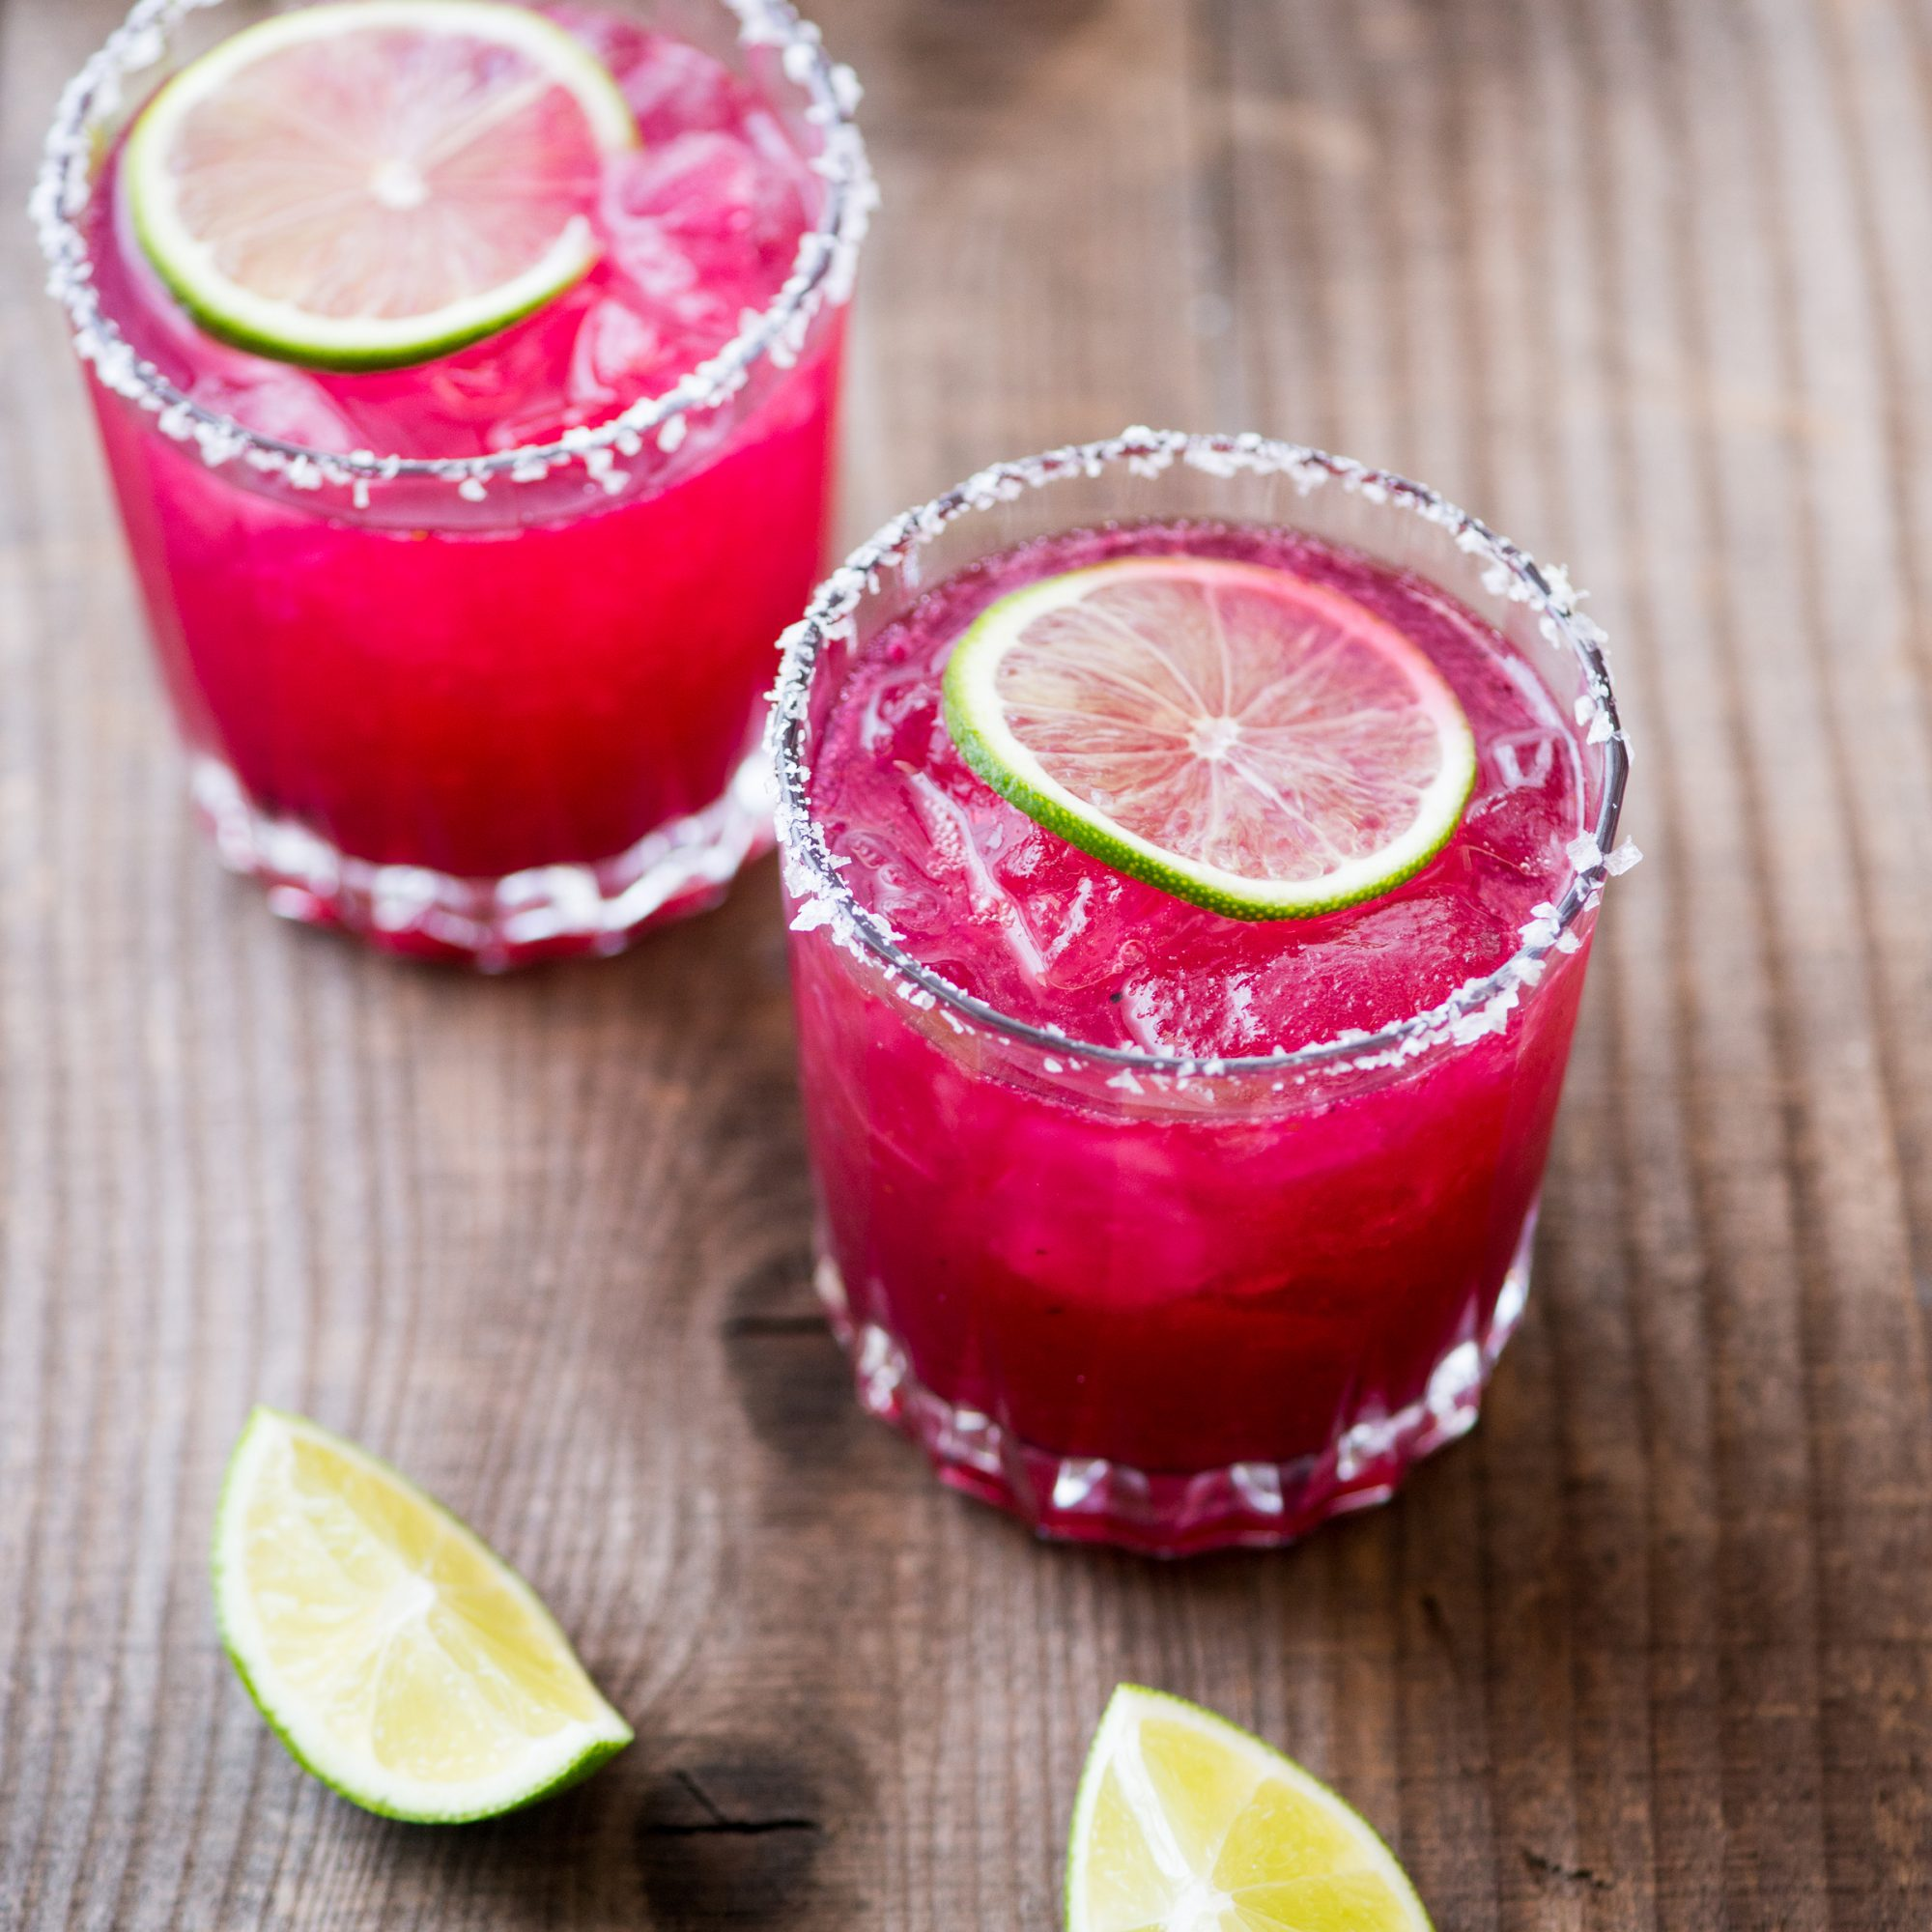 original-201311-r-blueberry-margarita.jpg